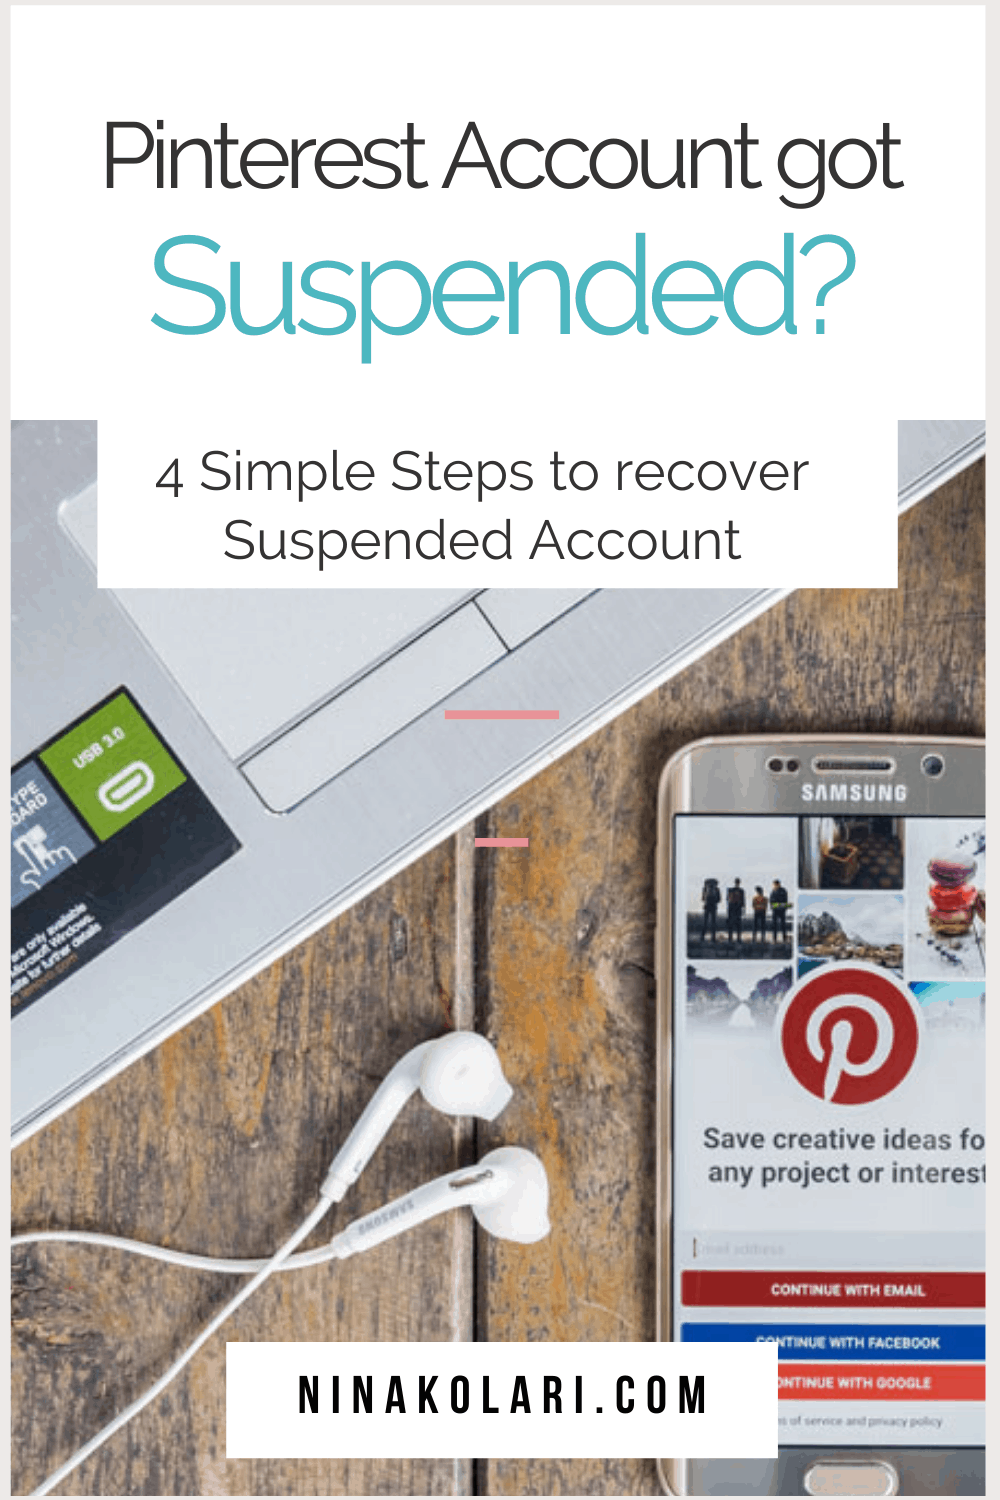 Got your Pinterest account suspended? Here's what you should do next. Follow few simple steps to recover your suspended Pinterest account back. Also learn why you might have been suspended so you know what to avoid going forward. You might also be suspended because of a bug so you might not even done anything wrong. #pinterestmarketing #pinterestaccount #suspended